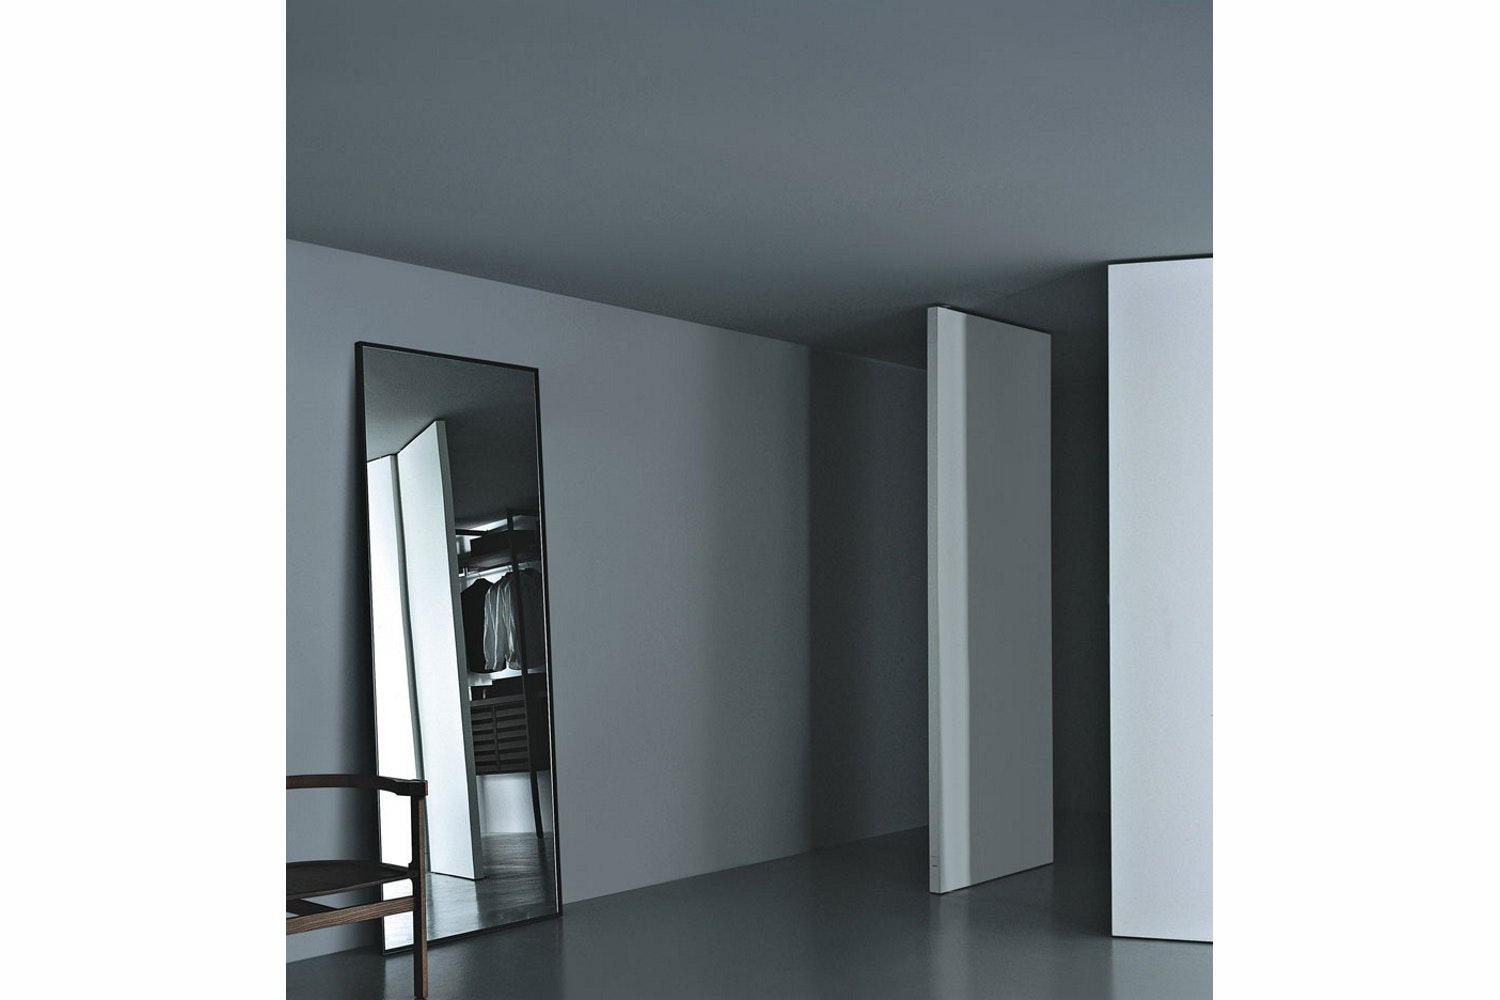 Reflection Small Vertical Mirror by Piero Lissoni for Porro